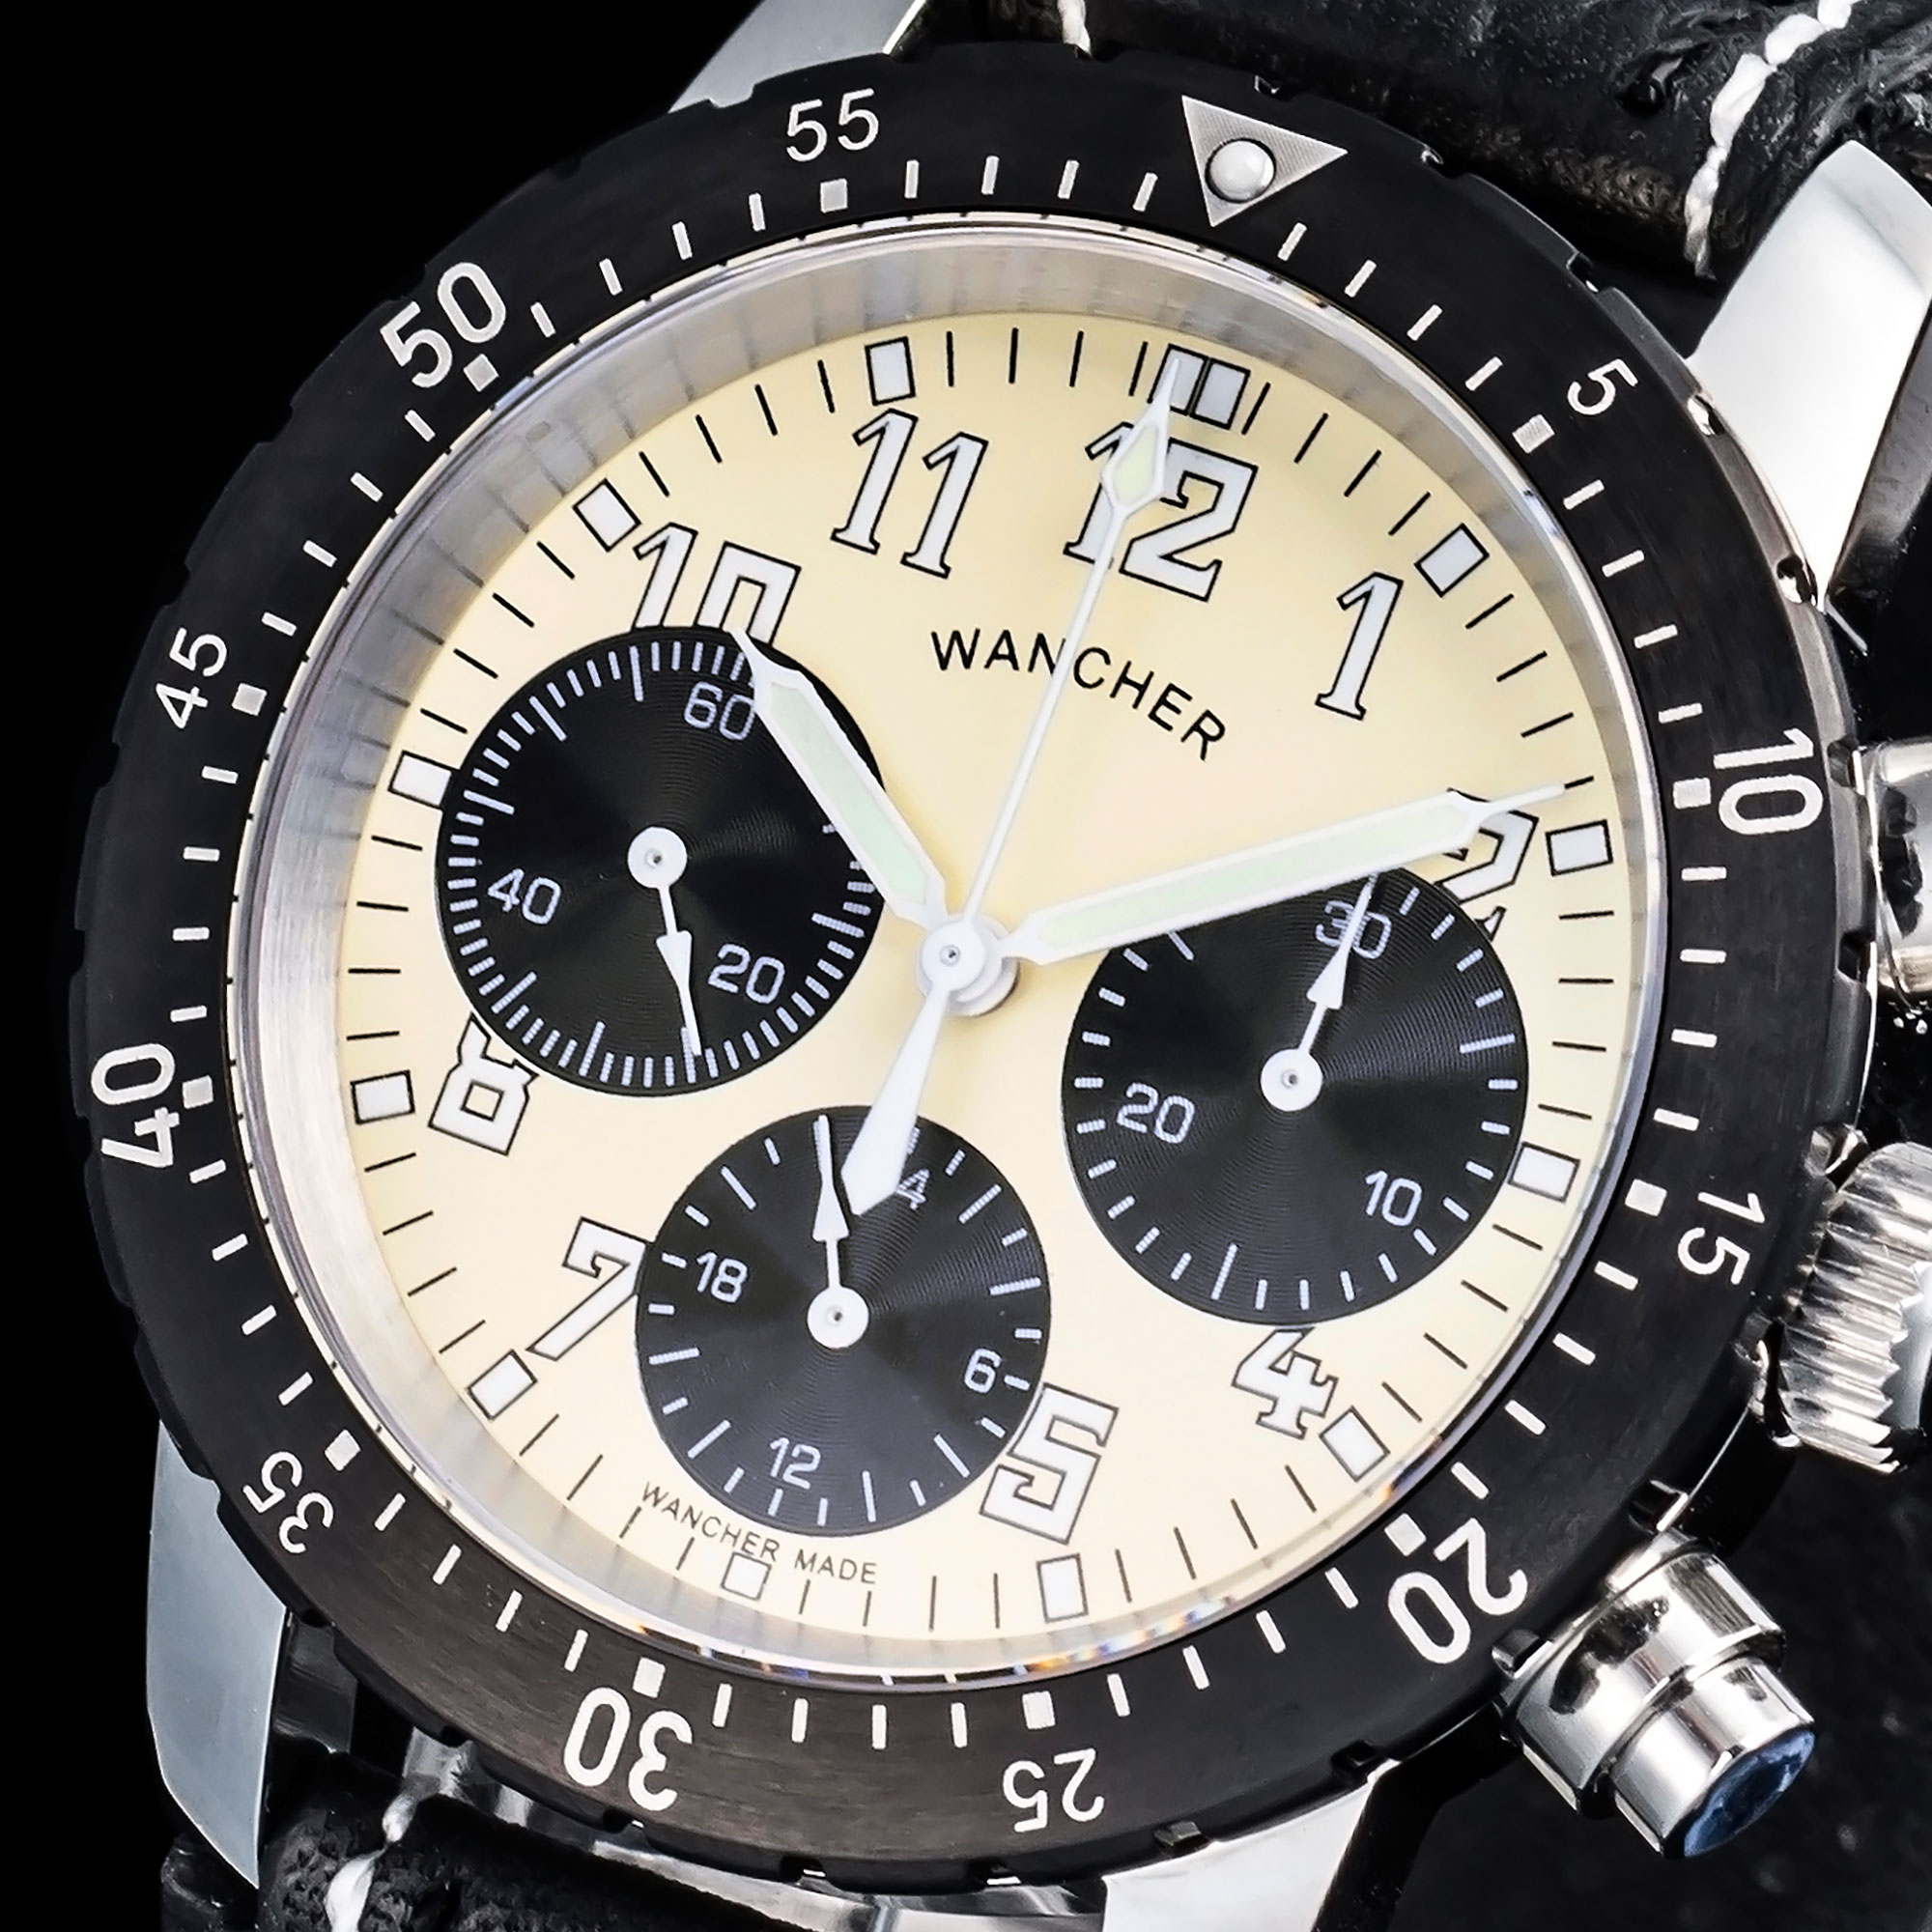 Rotating Count-up Bezel with a 0-60 Scale - This is the most commonly seen bezel markers are on dive watches. These scales go from 0 to 60, indicating minutes in an hour in order to keep track of time spent underwater, a critical parameter along with depth and remaining air.